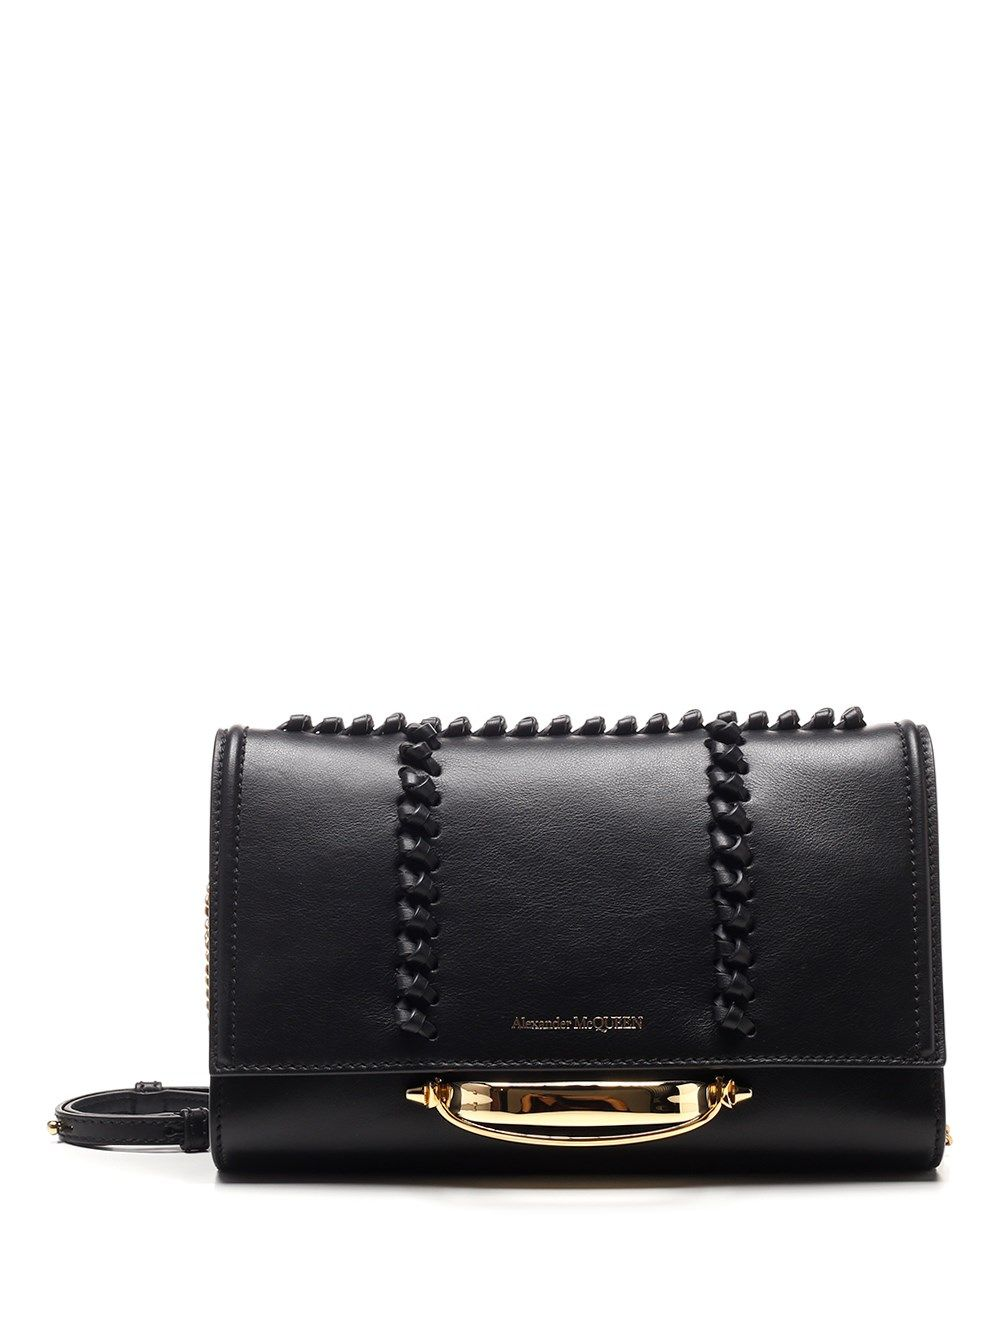 Alexander Mcqueen ALEXANDER MCQUEEN WOMEN'S BLACK OTHER MATERIALS SHOULDER BAG